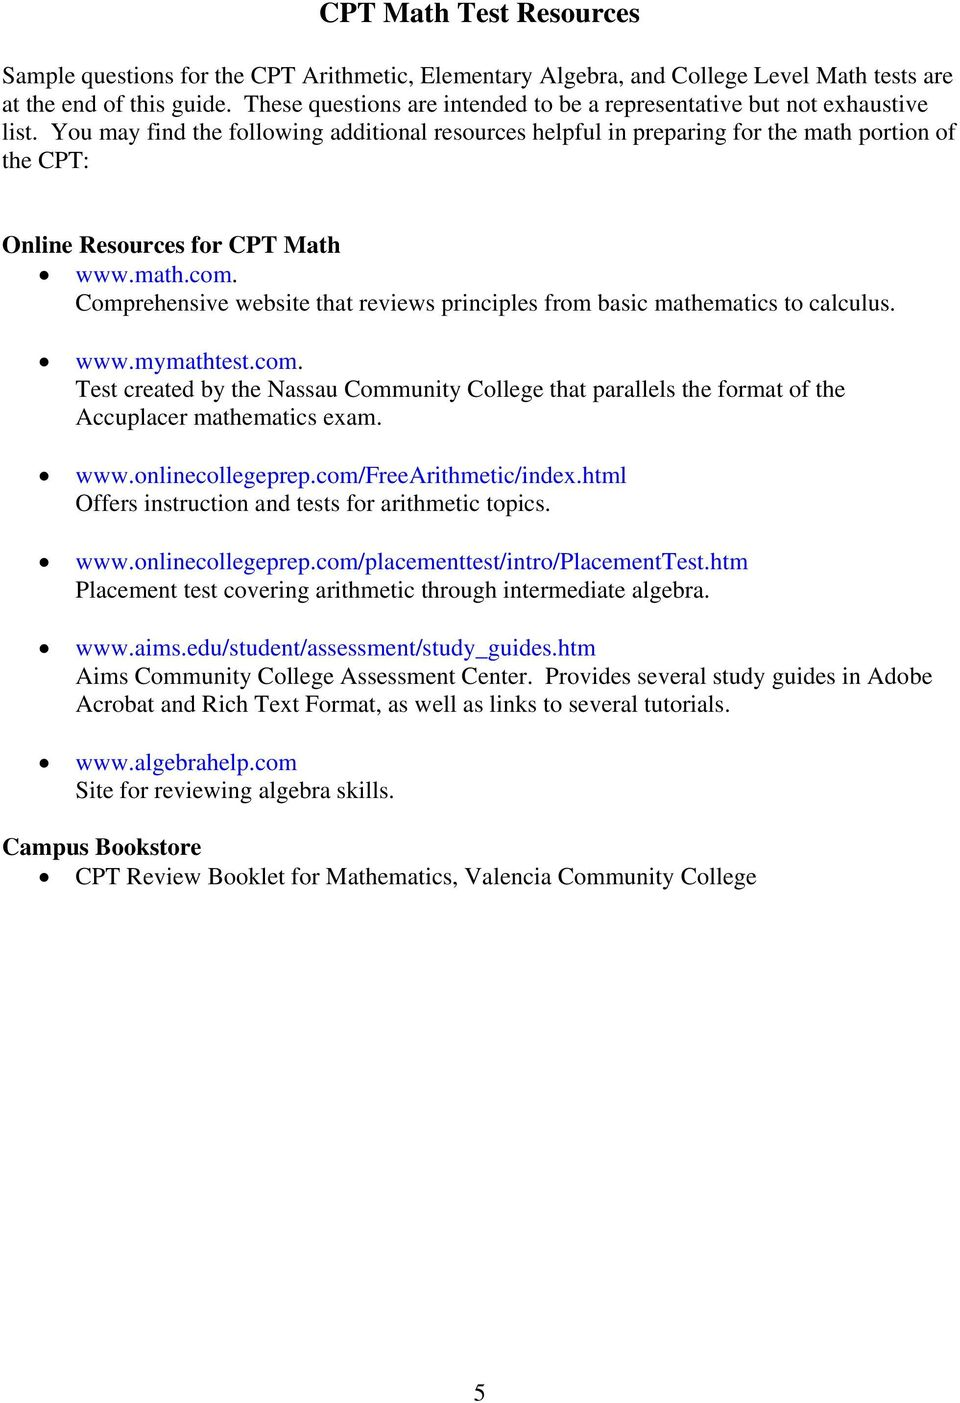 You ma find the following additional resources helpful in preparing for the  math portion of the